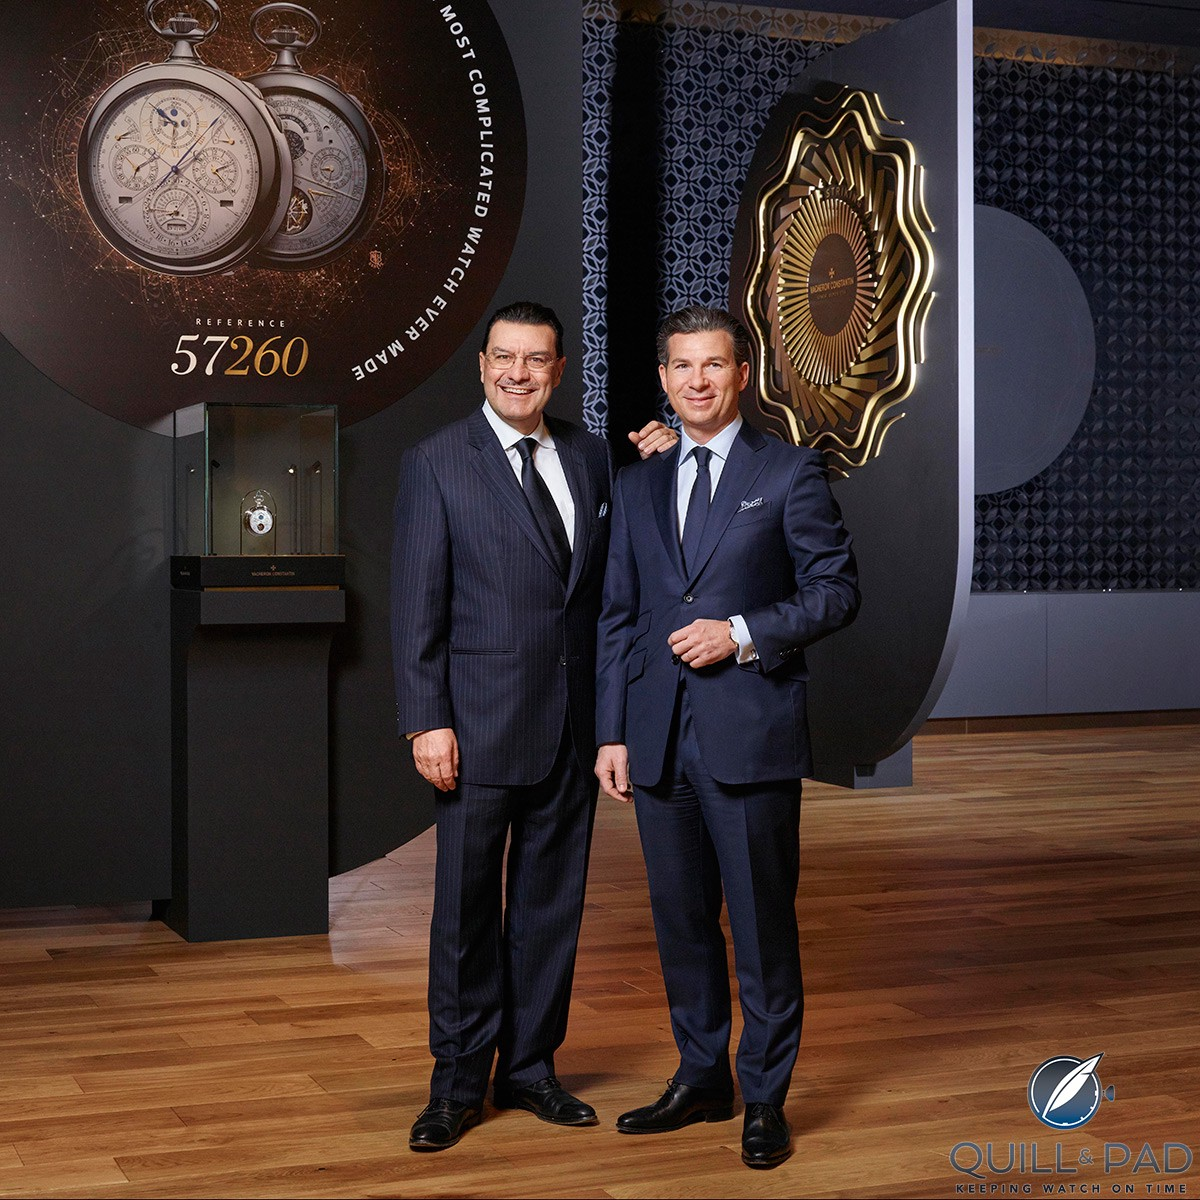 Out going CEO of Vacheron Constantin Juan-Carlos Torres (left) with incoming CEO Louis Ferla